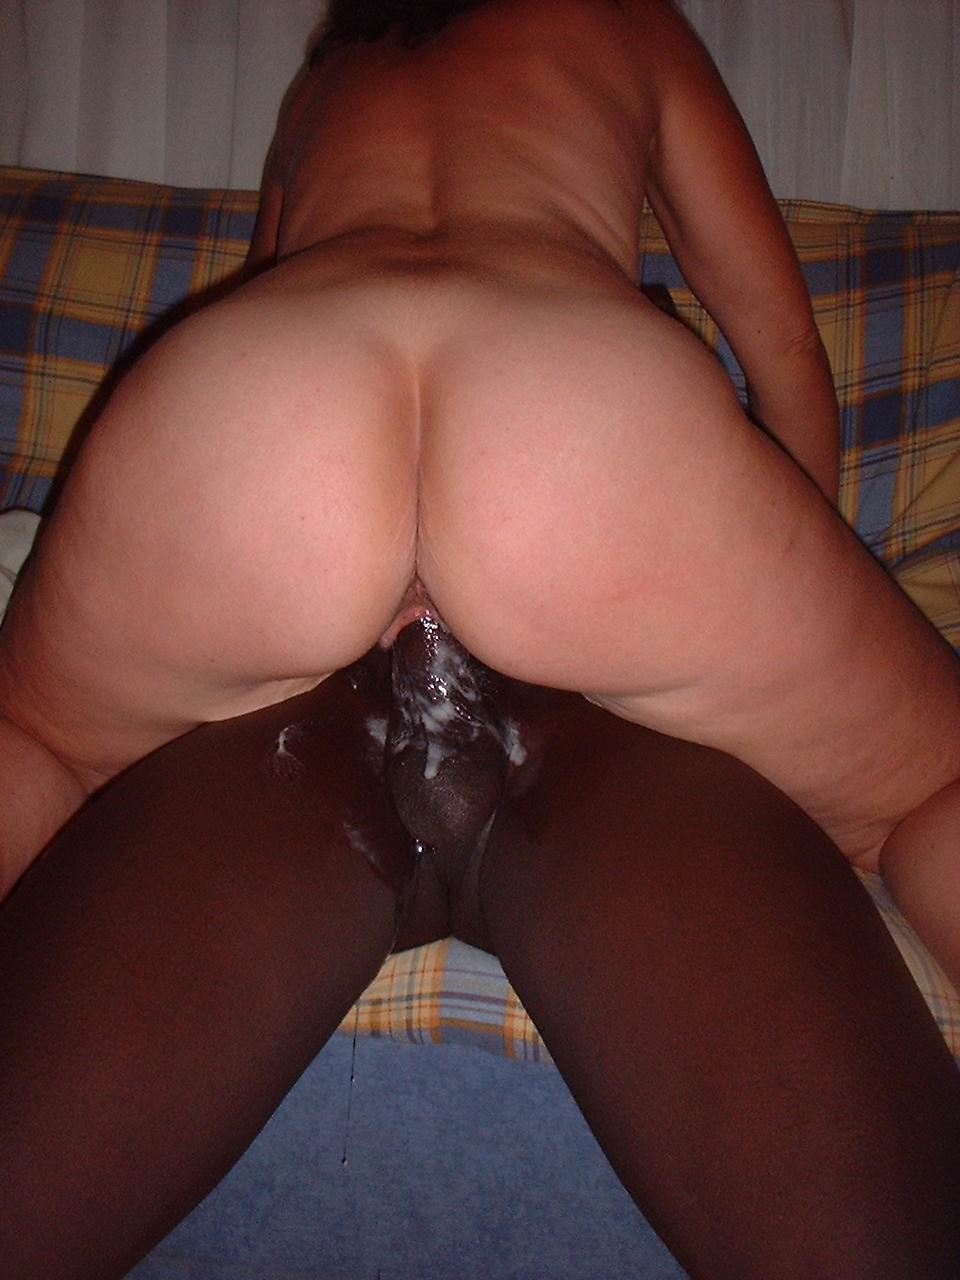 http://www.amateurinterracial.biz/back/black men on white women53.jpg